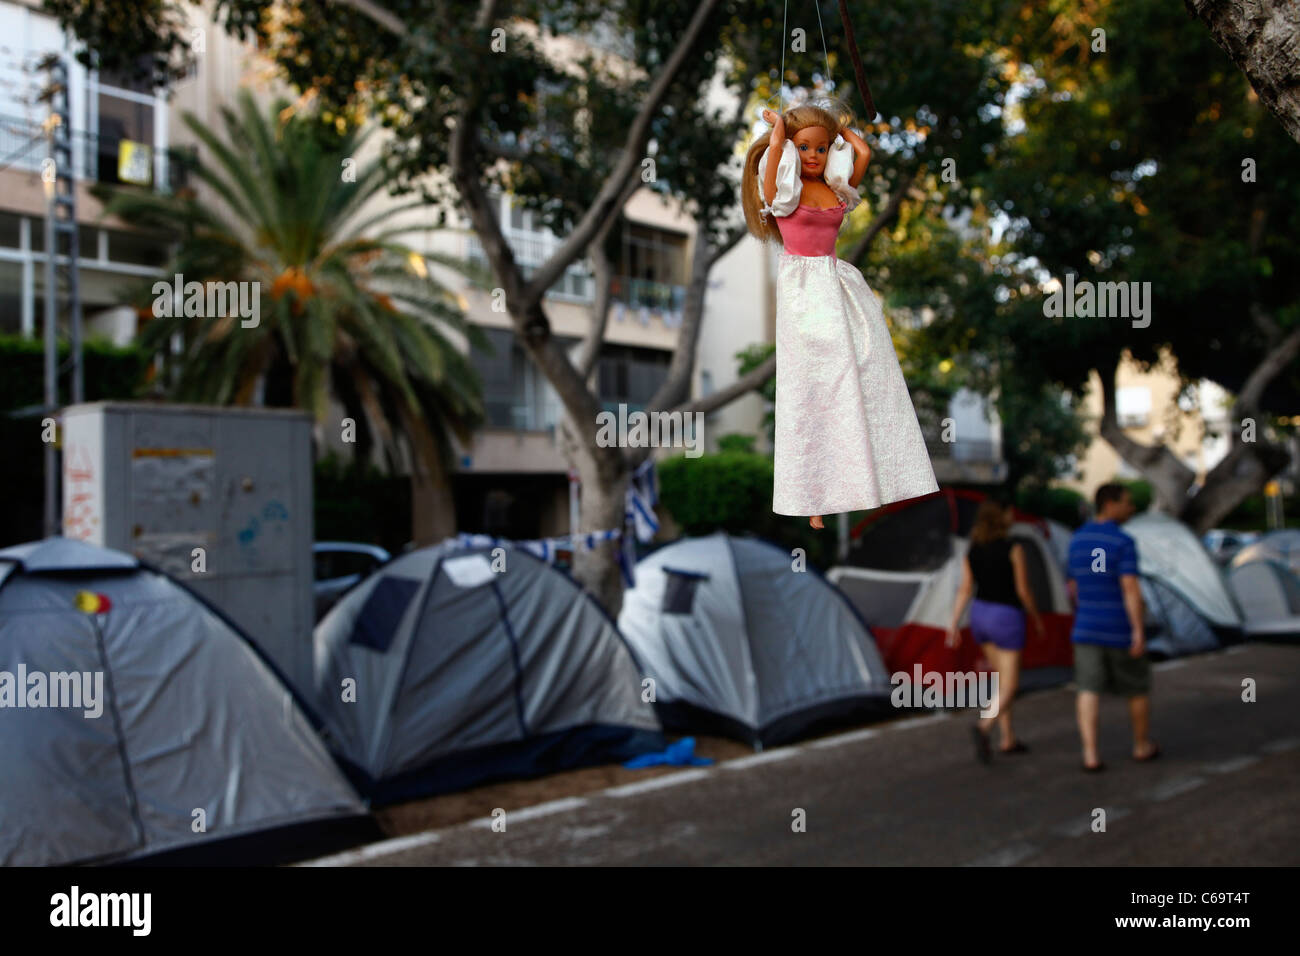 Israelis camping in Nordau avenue in Tel Aviv during a protest against skyrocketing housing prices in Israel. The - Stock Image